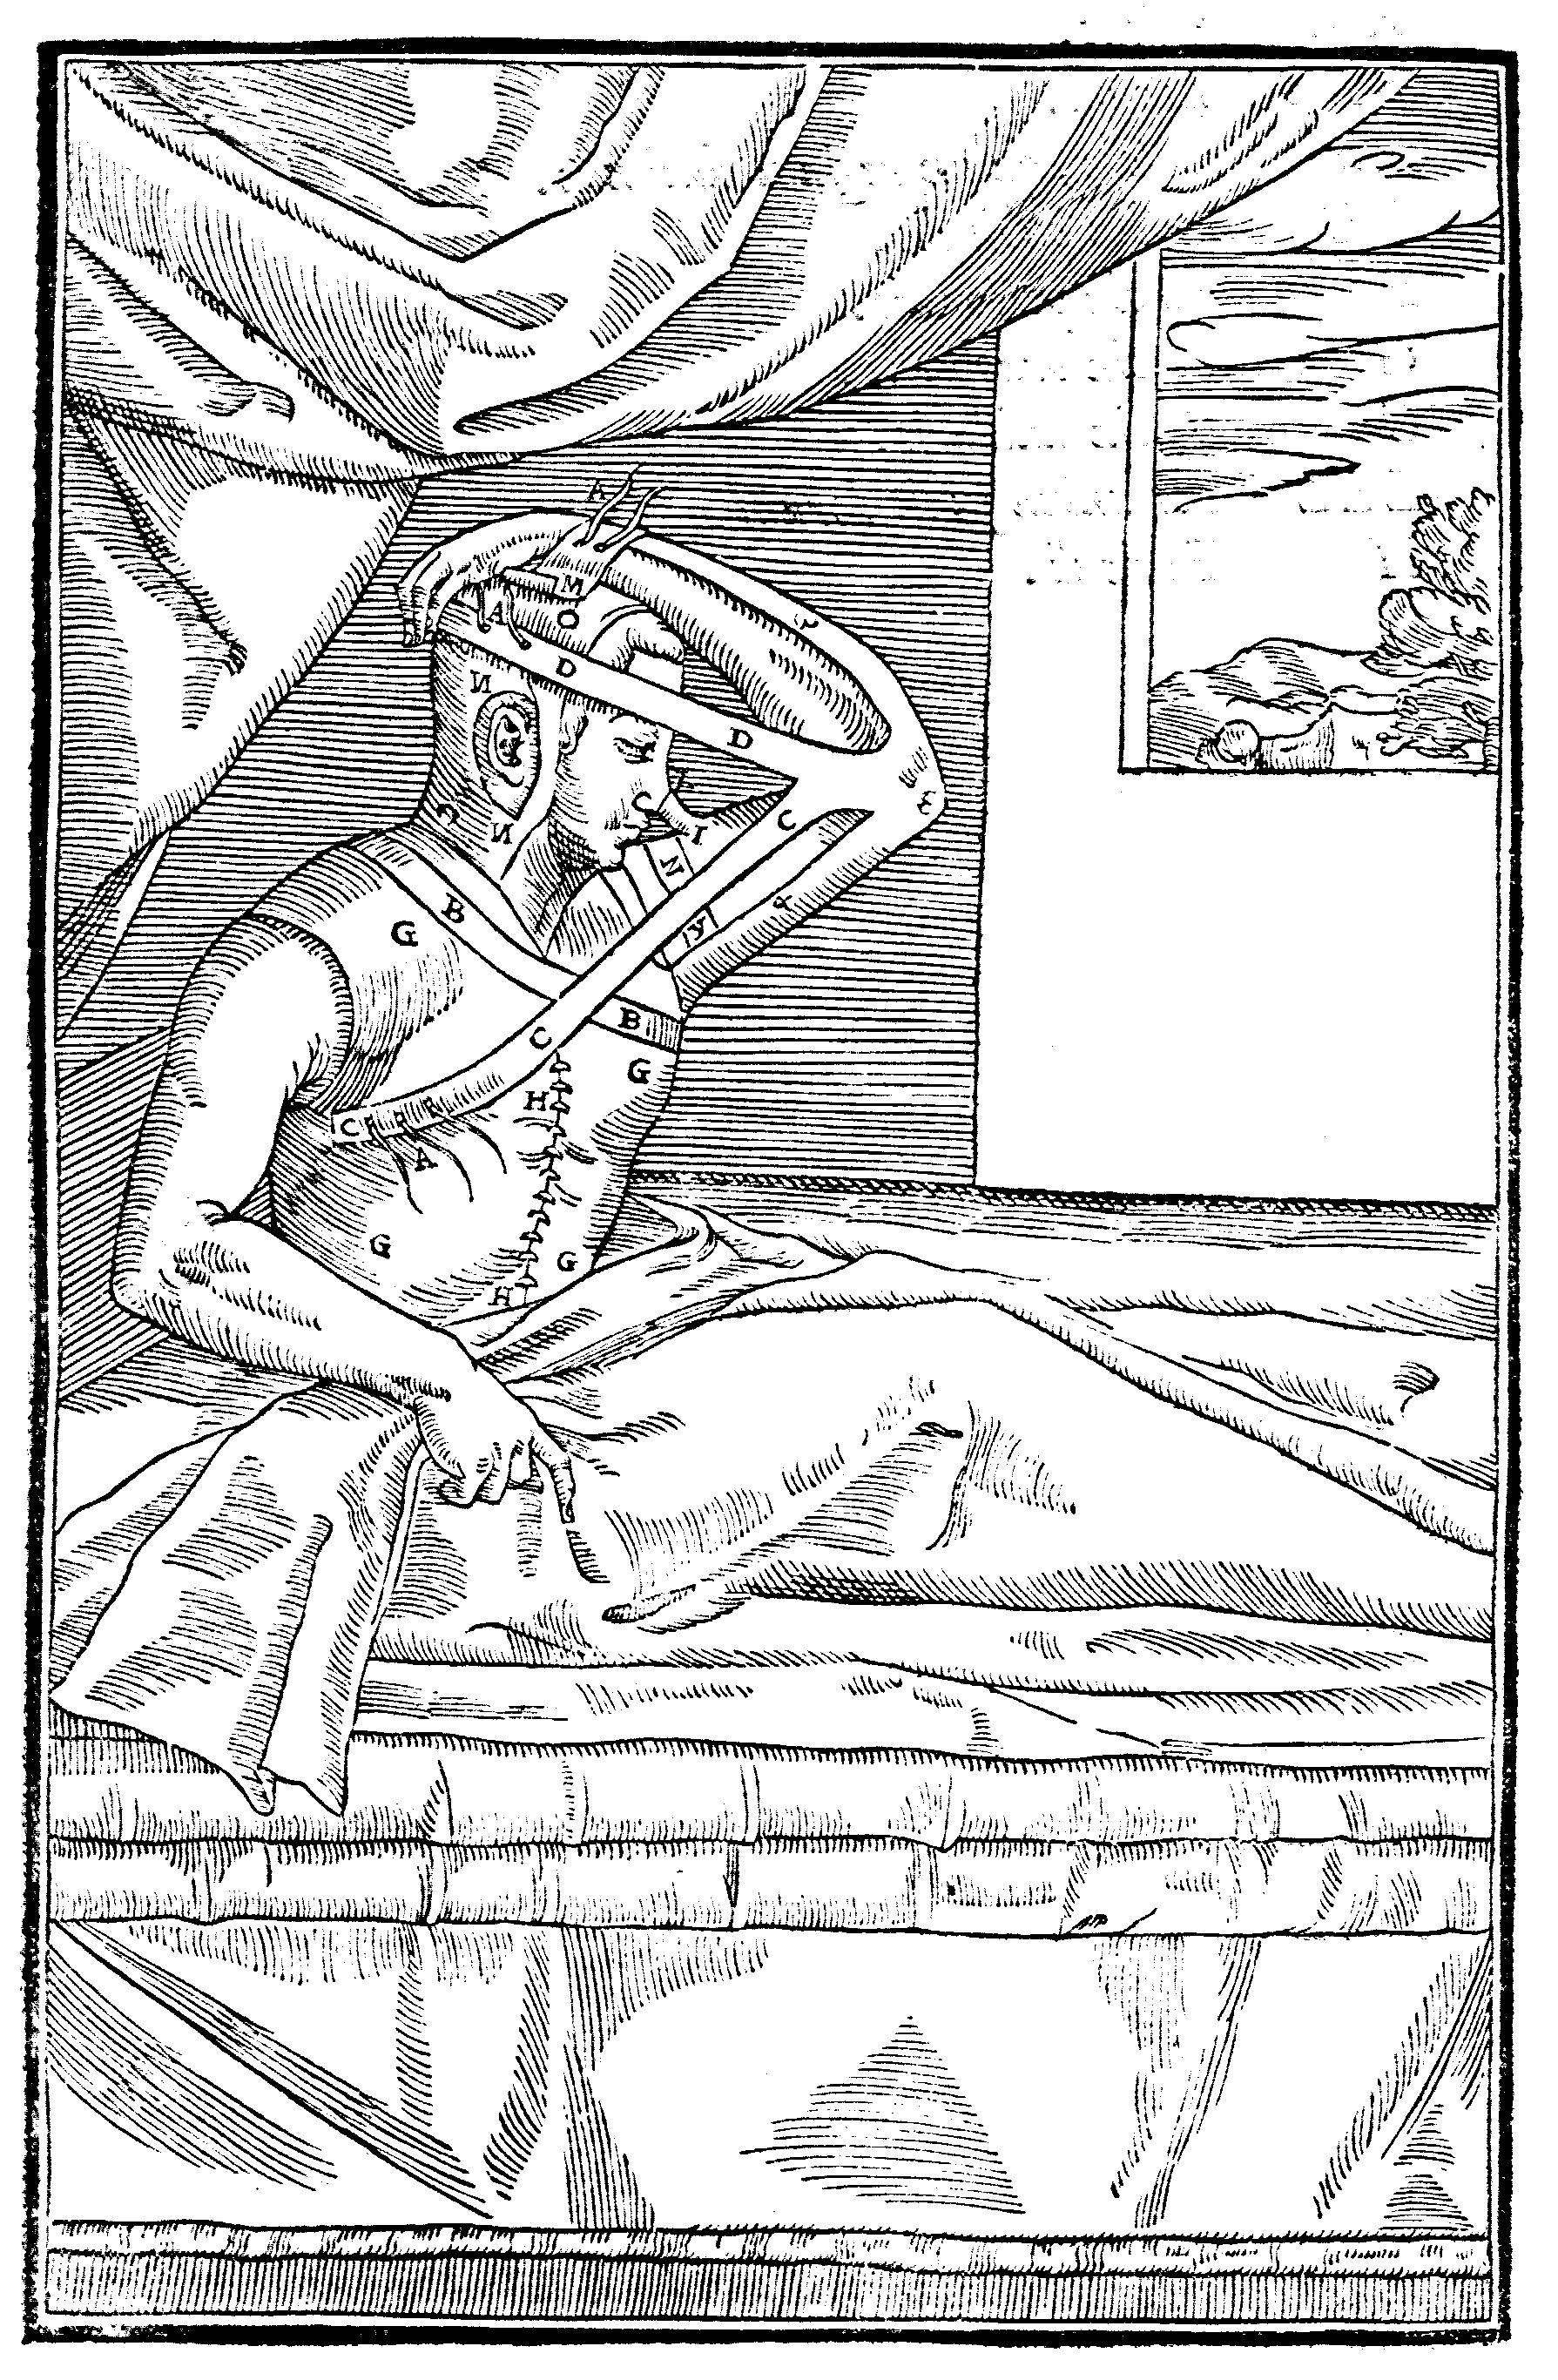 An early technique for grafting tissue to surgically correct a nose defect.